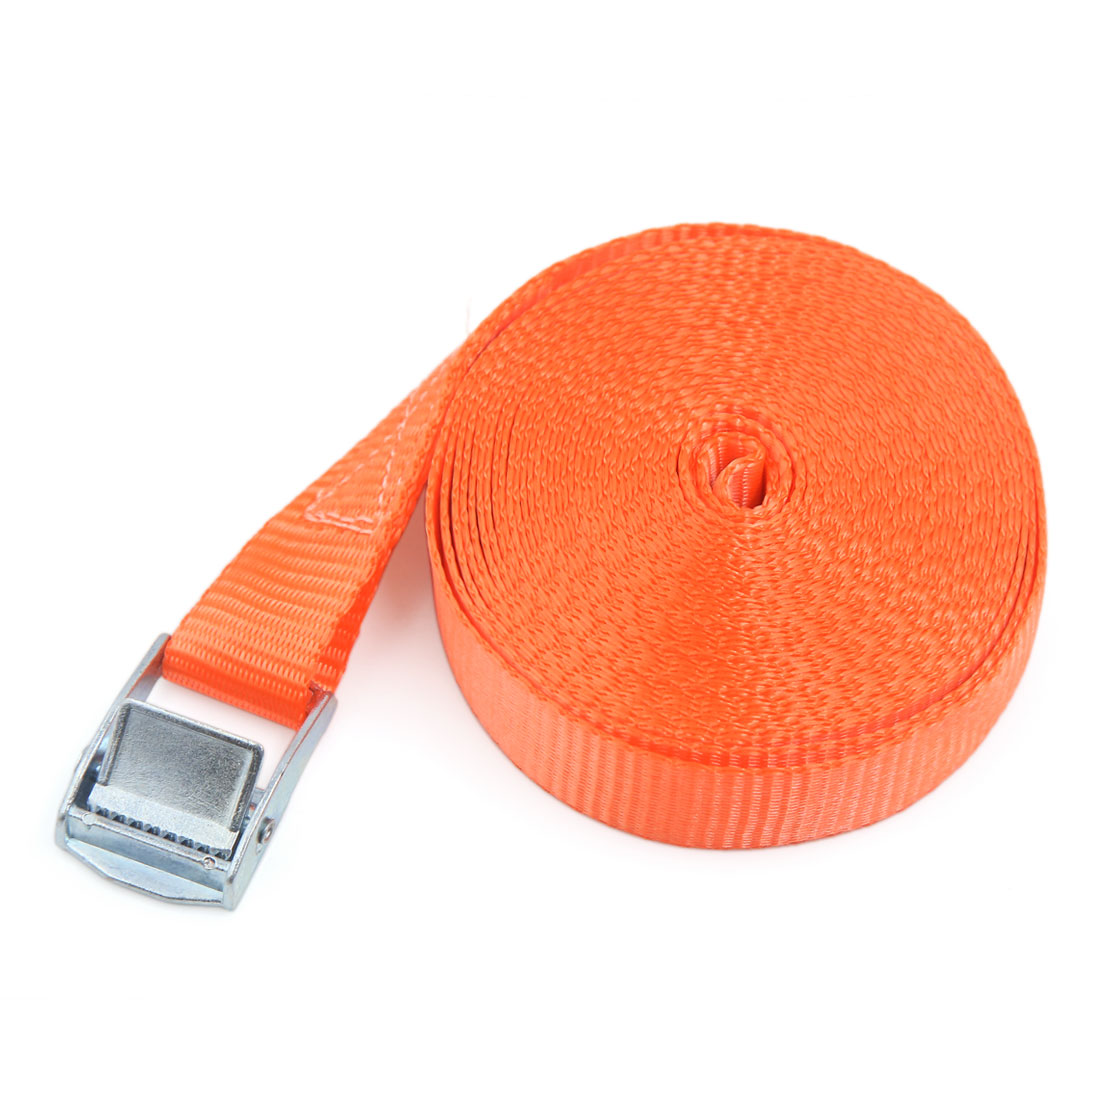 7M x 25MM Metal Cam Buckle Tie Down Straps Cargo Lash Luggage Bag Belt Orange